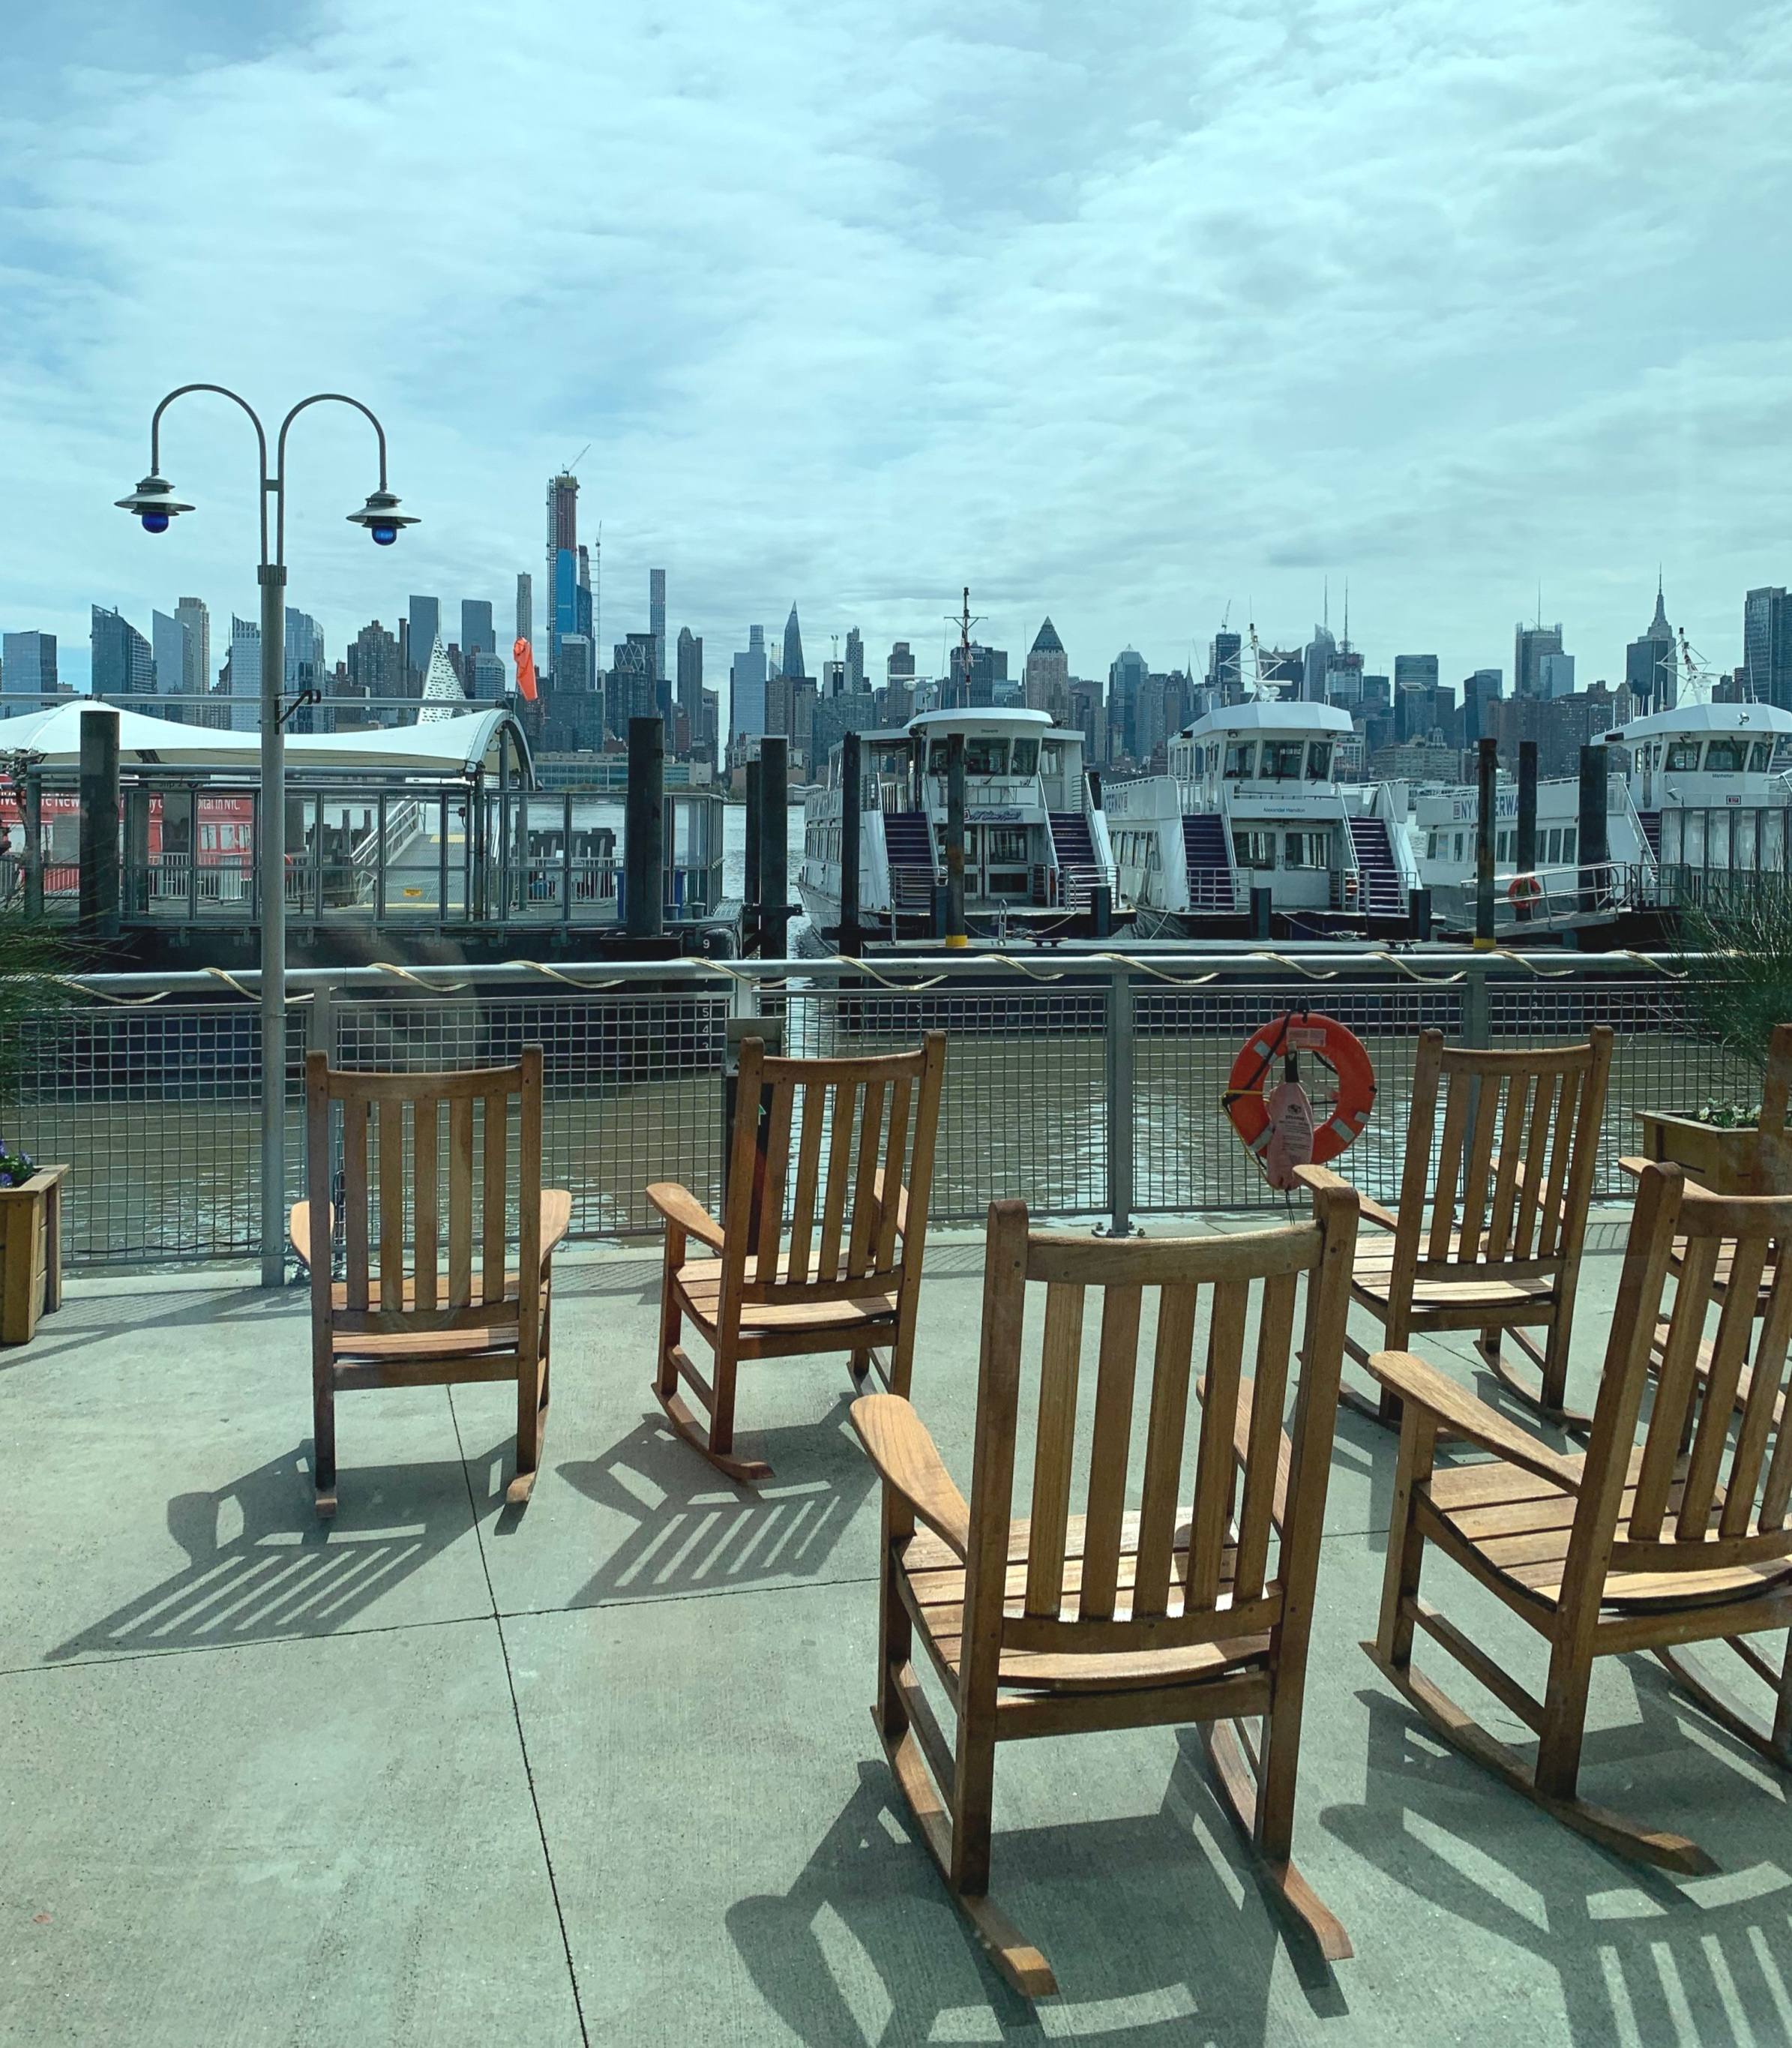 Waiting for the Ferry in Weehawken, NJ